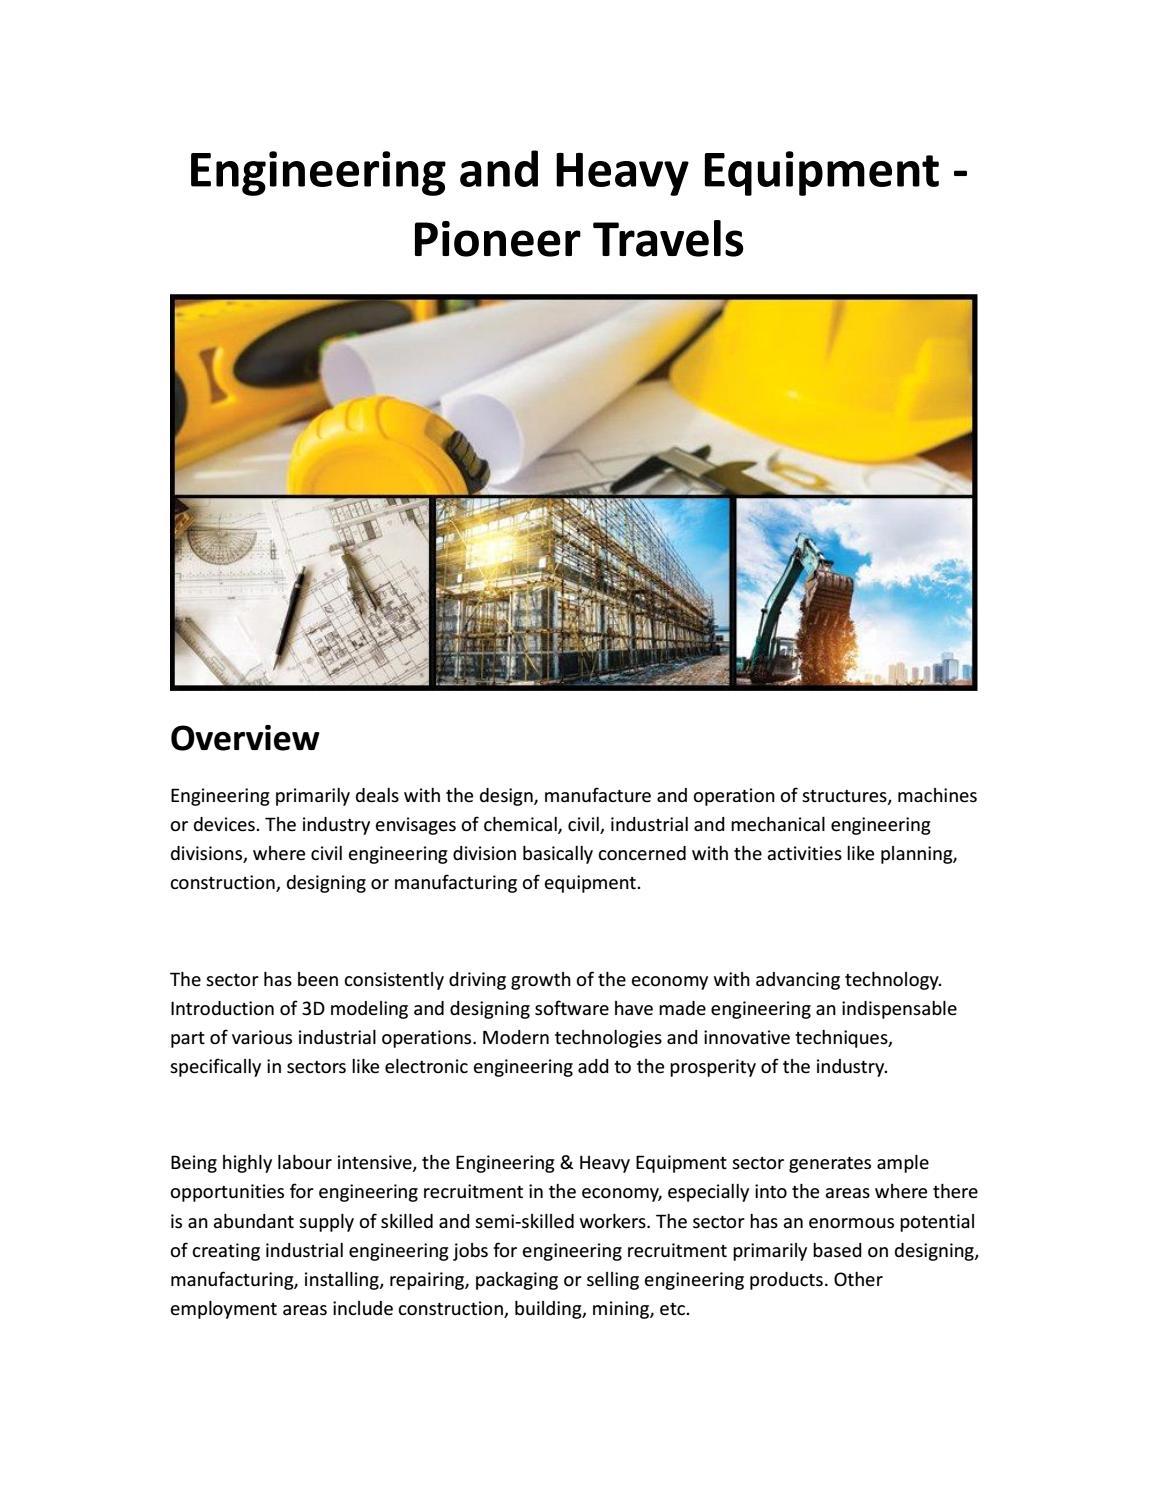 Overseas Placement Agency Overseas Placement Consultancy India Pioneer Travels By Pioneertravels Issuu